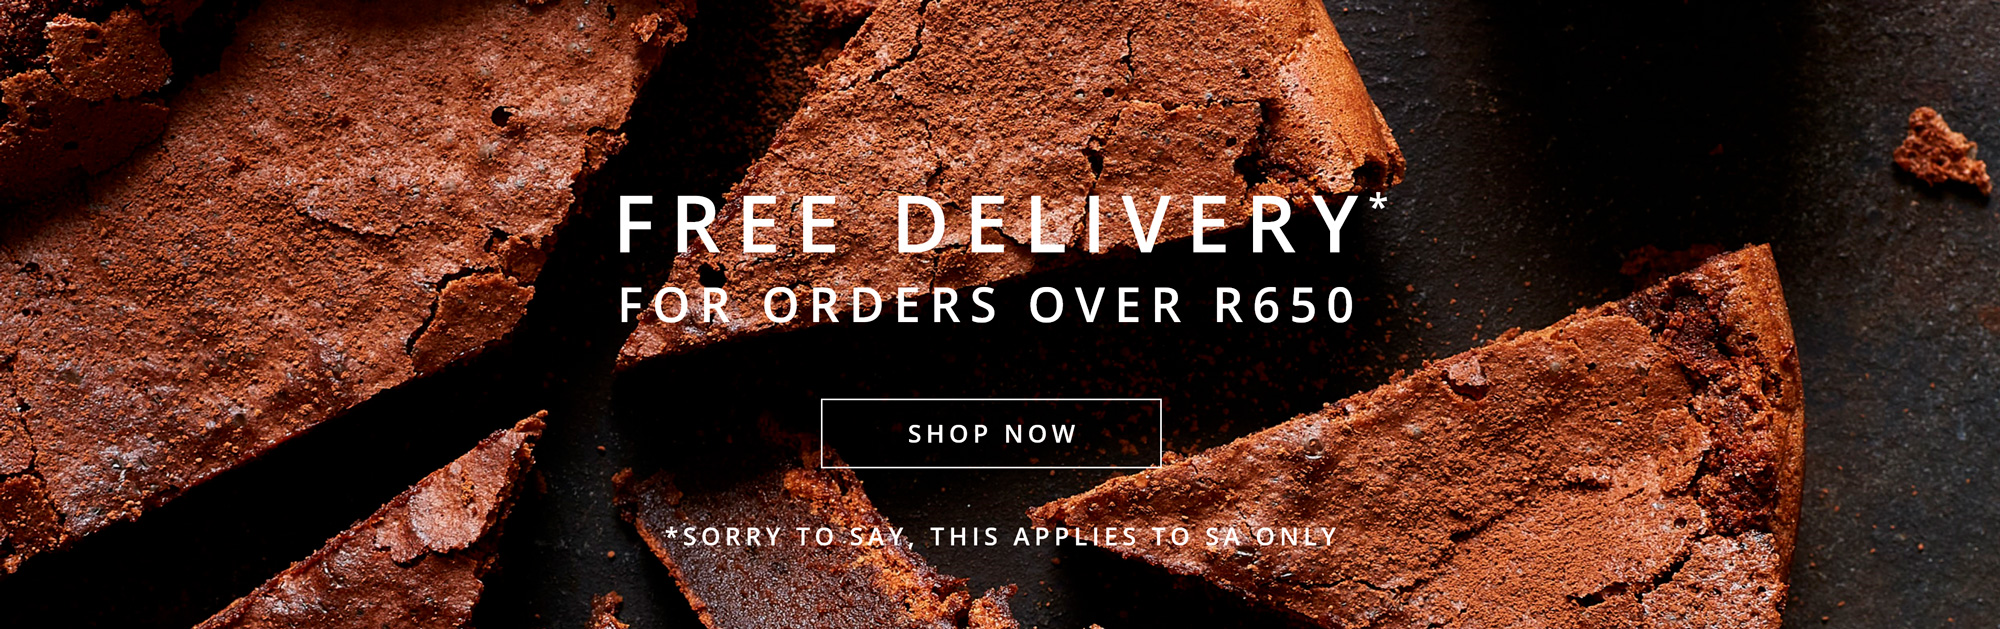 Free delivery over R650